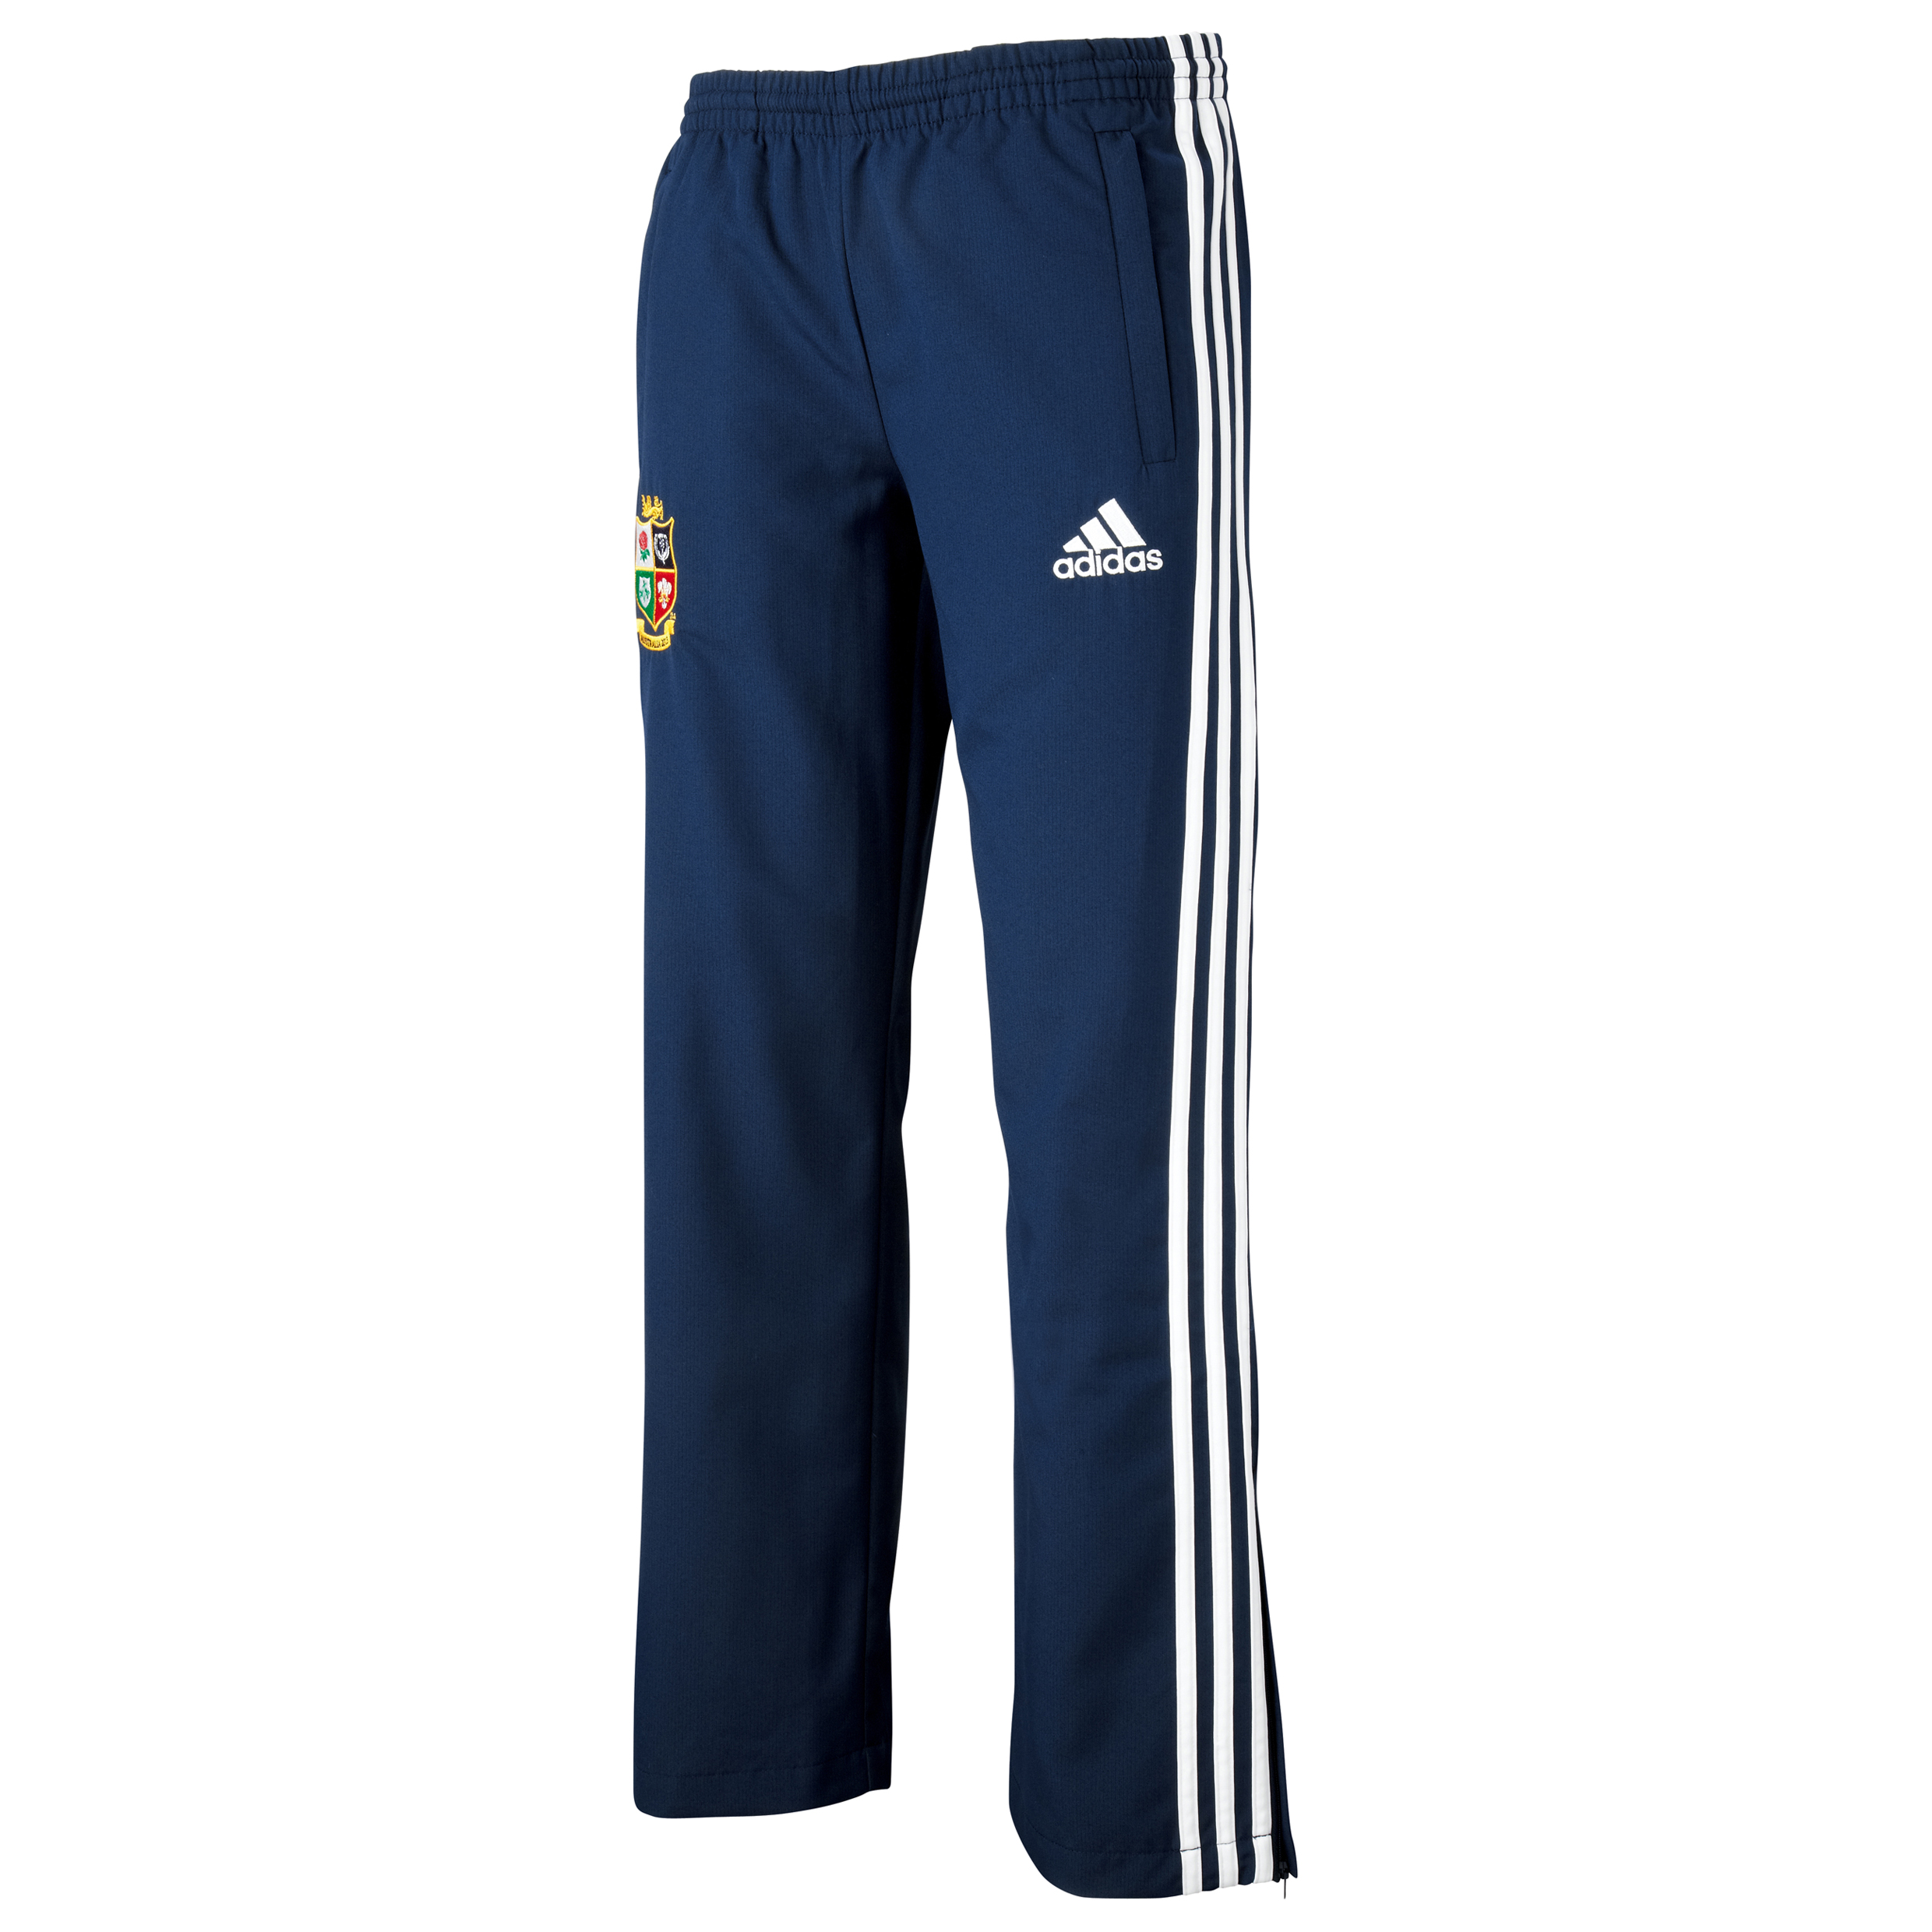 British & Irish Lions Presentation Pants - Collegiate Navy/White - Youths